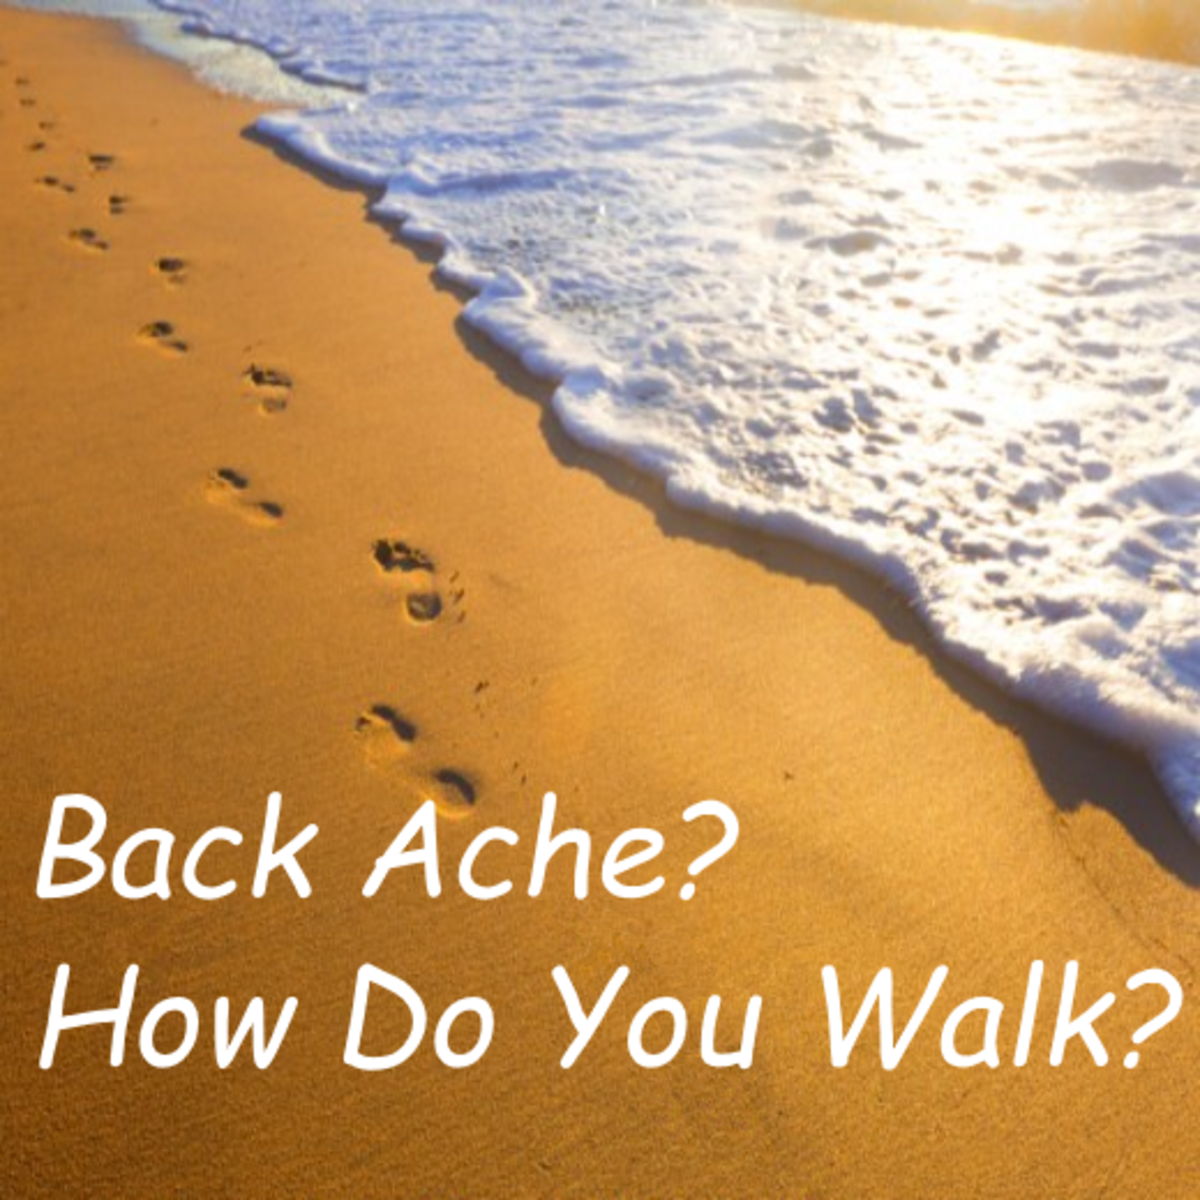 How Do You Walk? 3 Tips to Improve Your Walking Style and Relieve Back Pain